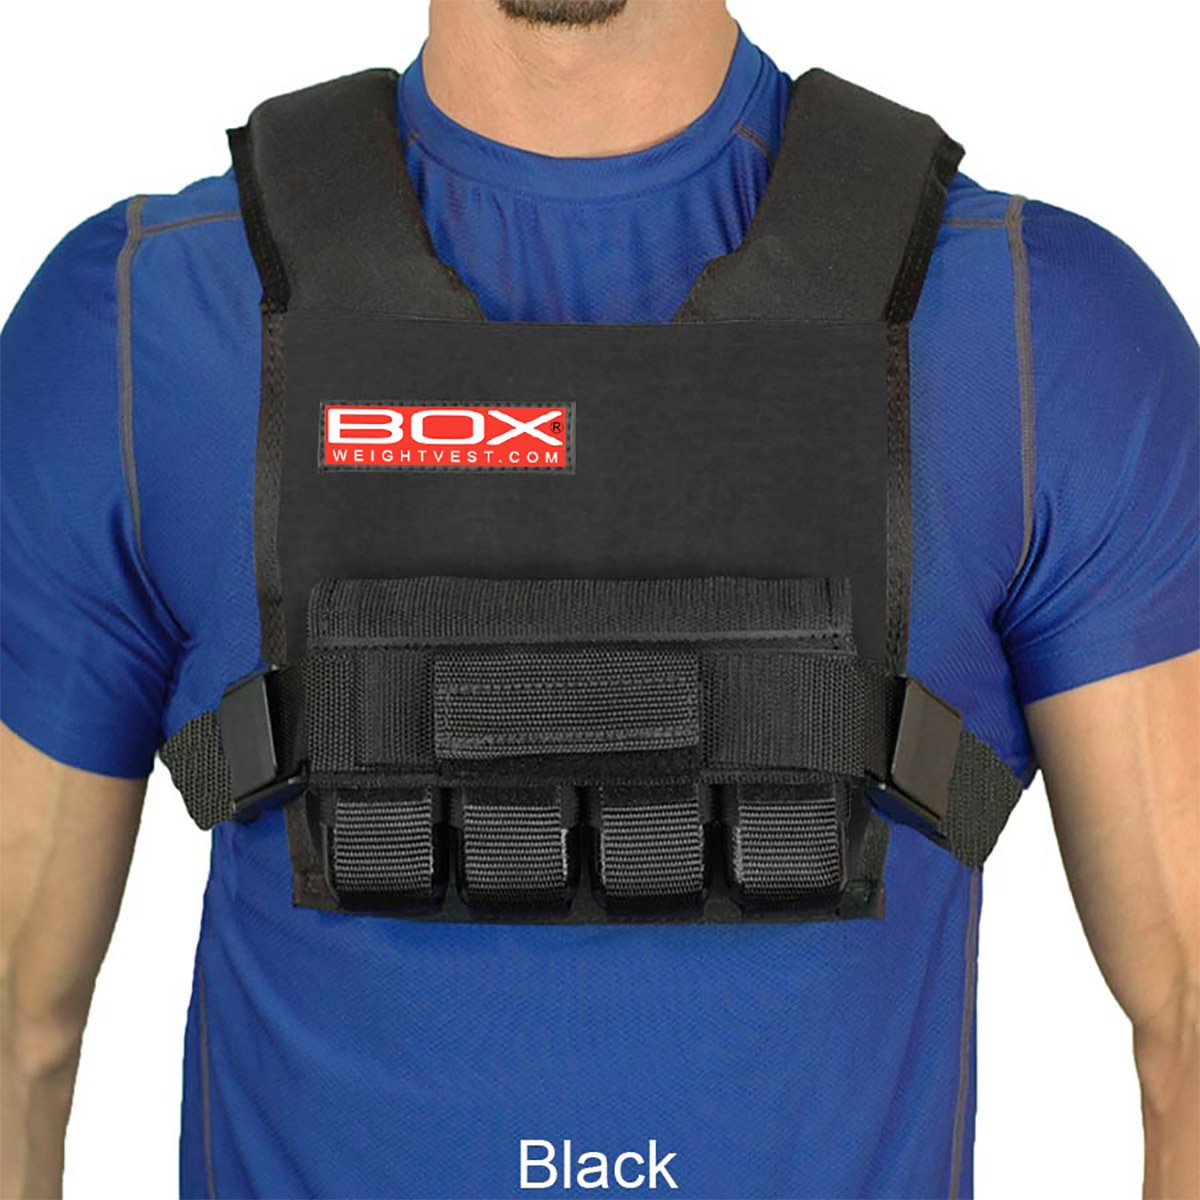 20 Lb. BOX Super Short -Weight Vest (Black)